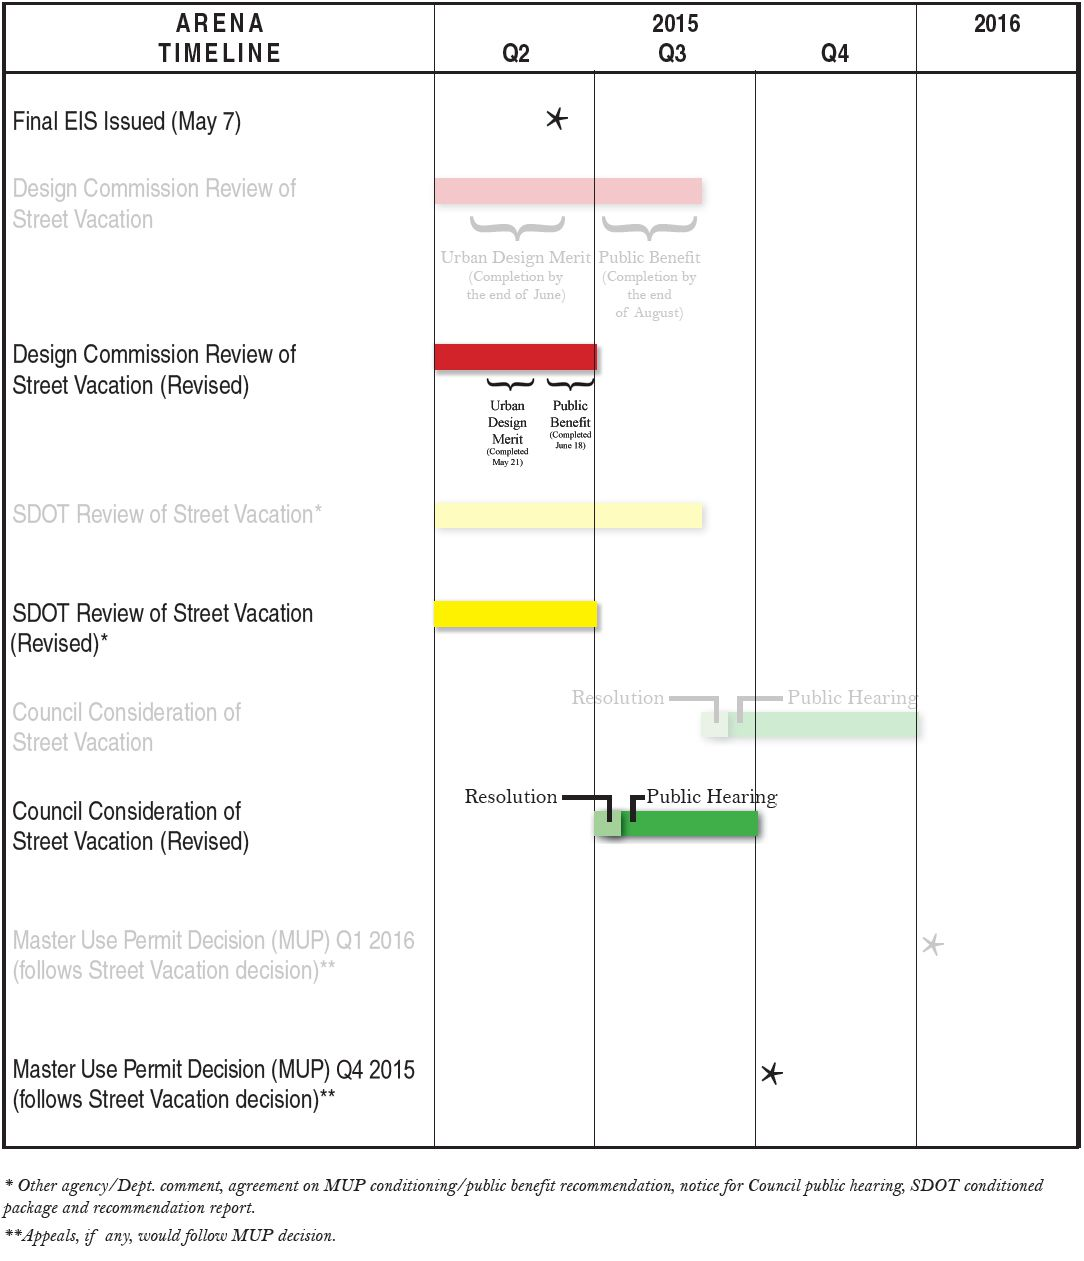 Arena Timeline Revised Unofficial